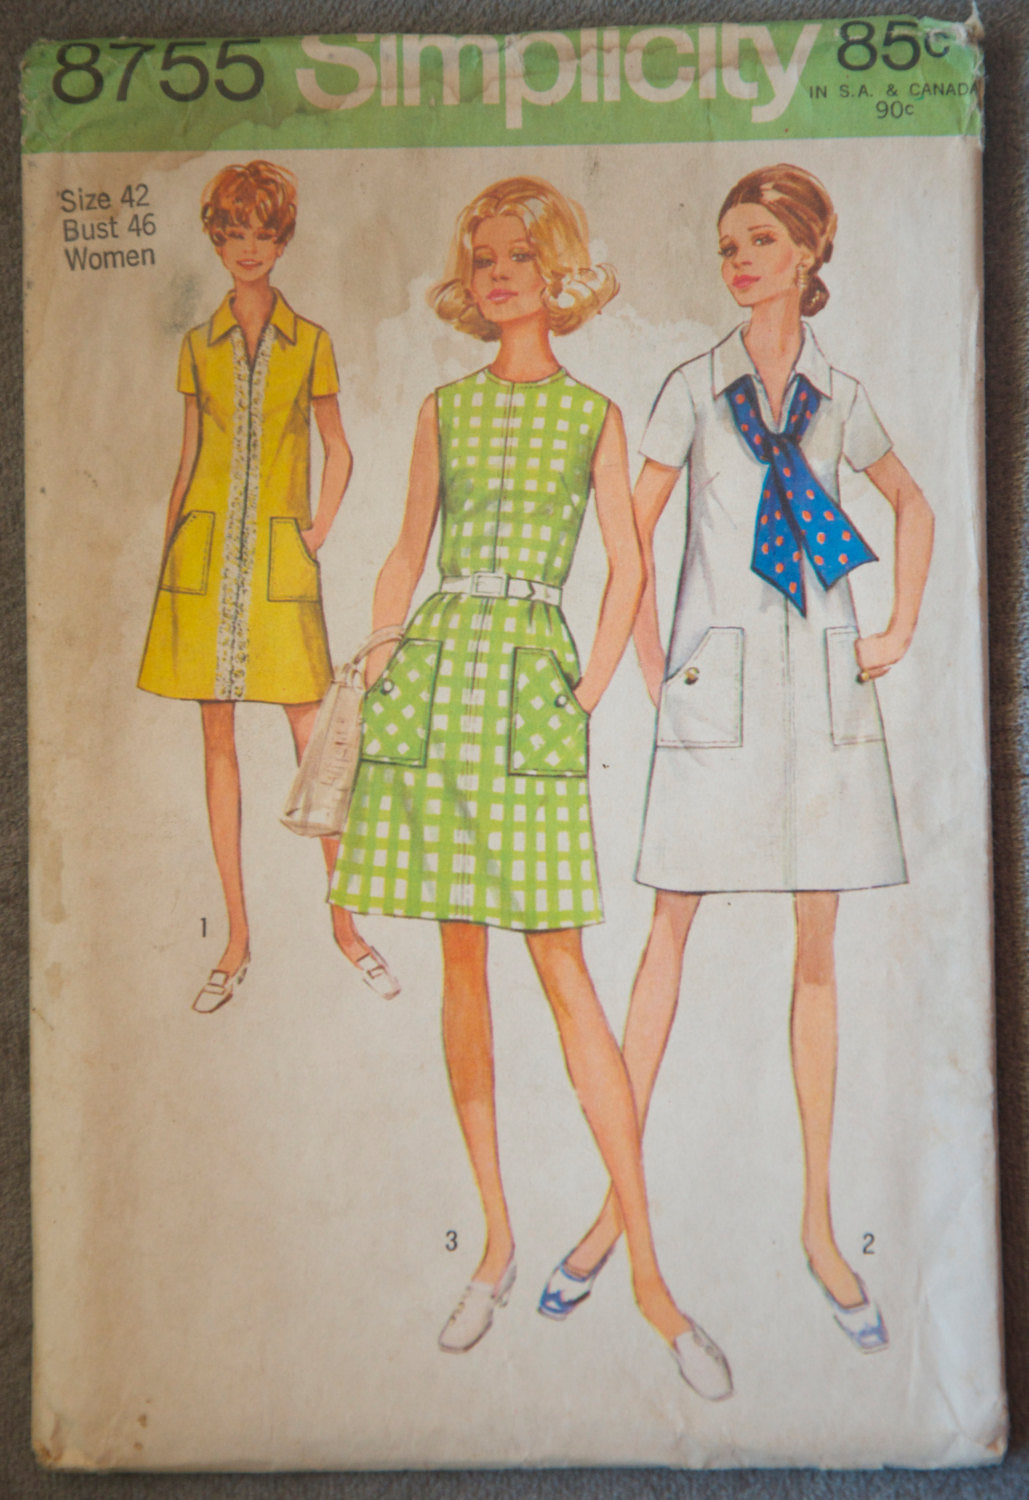 1970's Simplicity One Piece Dress pattern - Bust 46